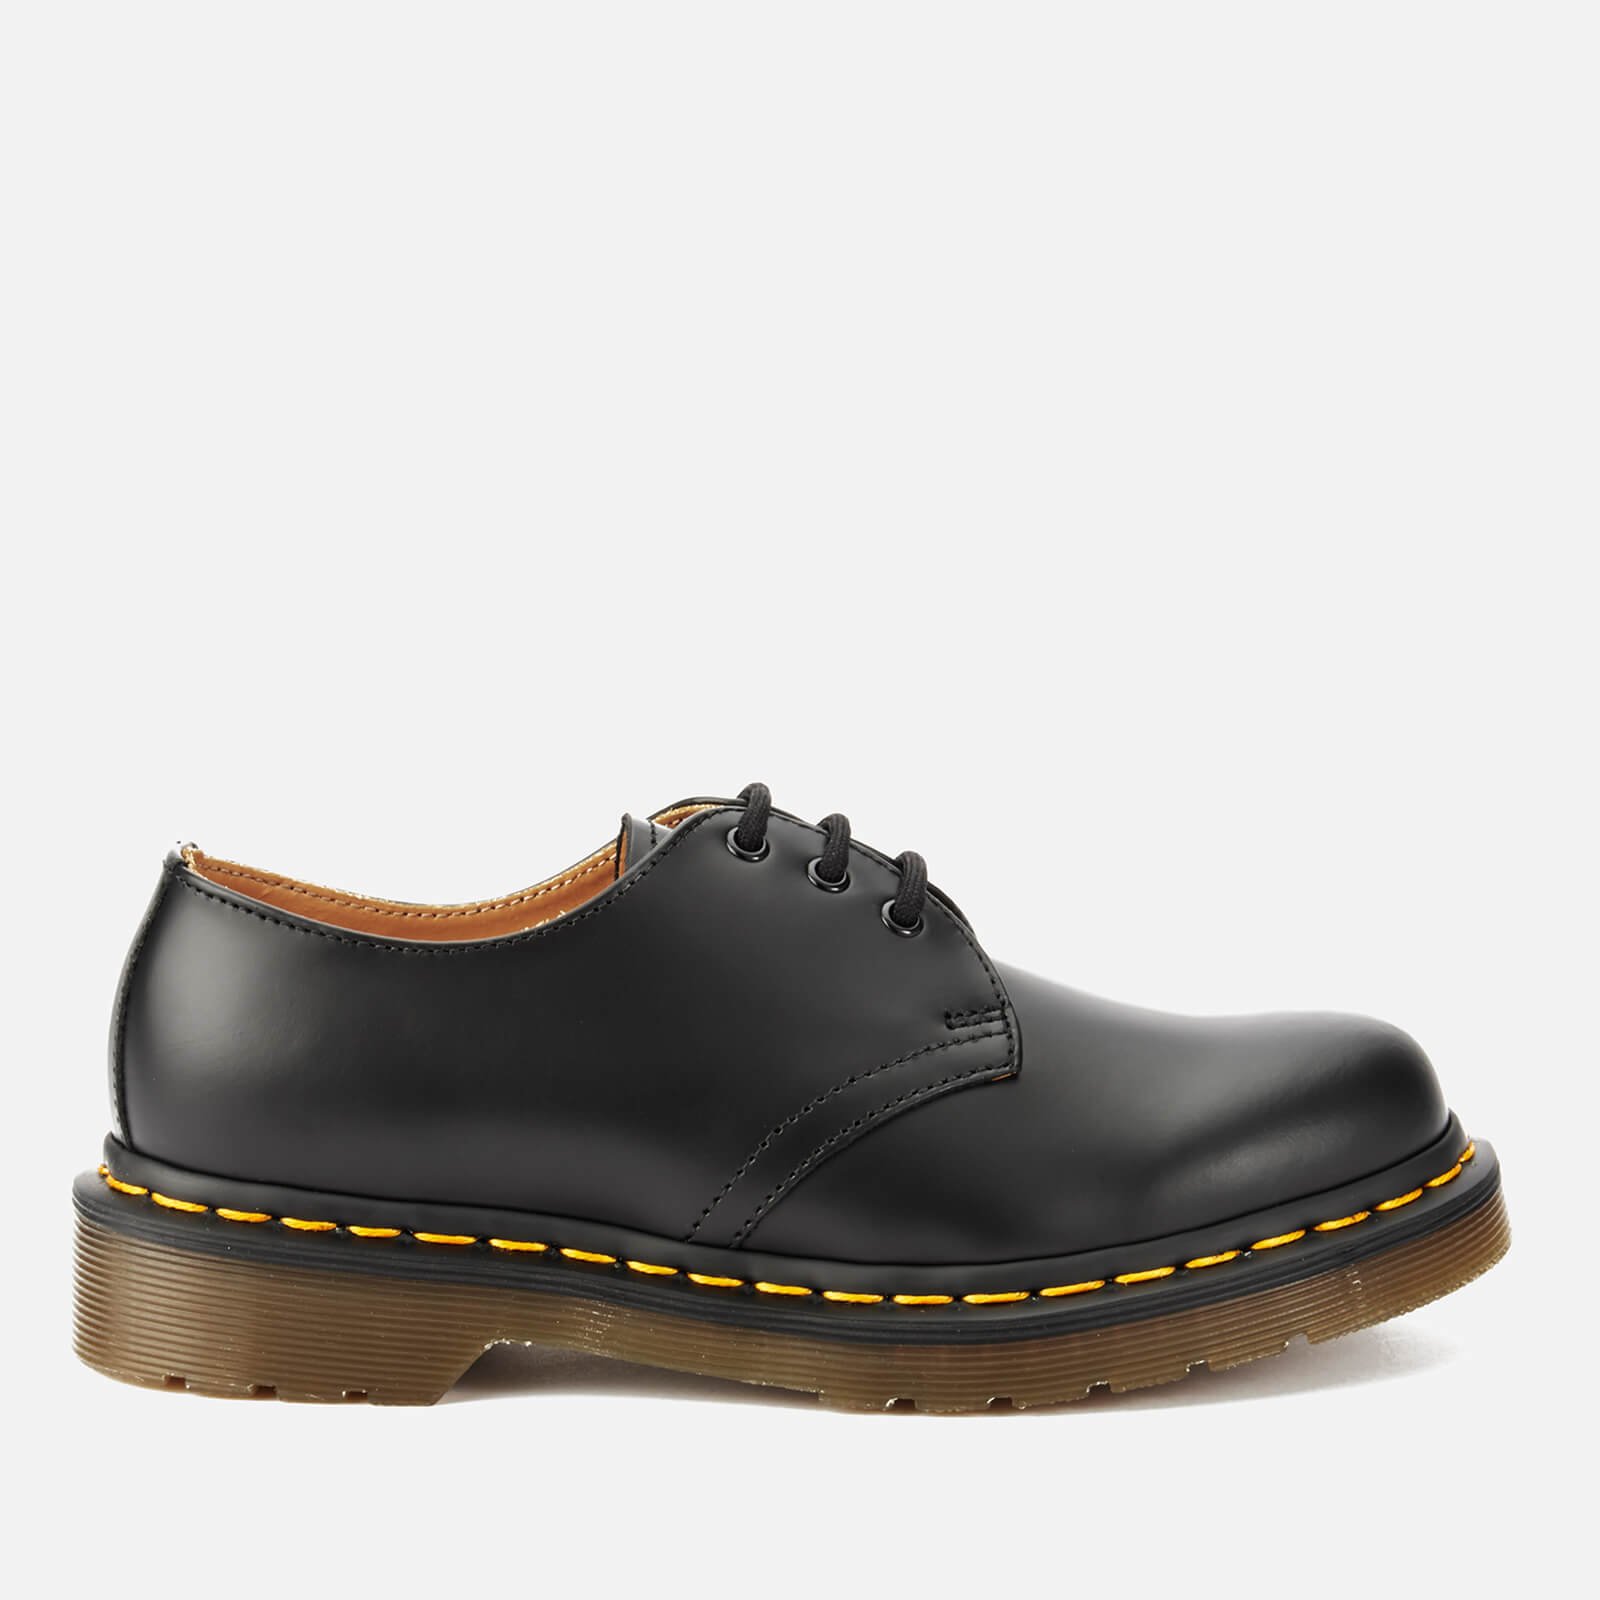 Dr. Martens 1461 Smooth Leather 3-Eye Shoes - Black - UK 8